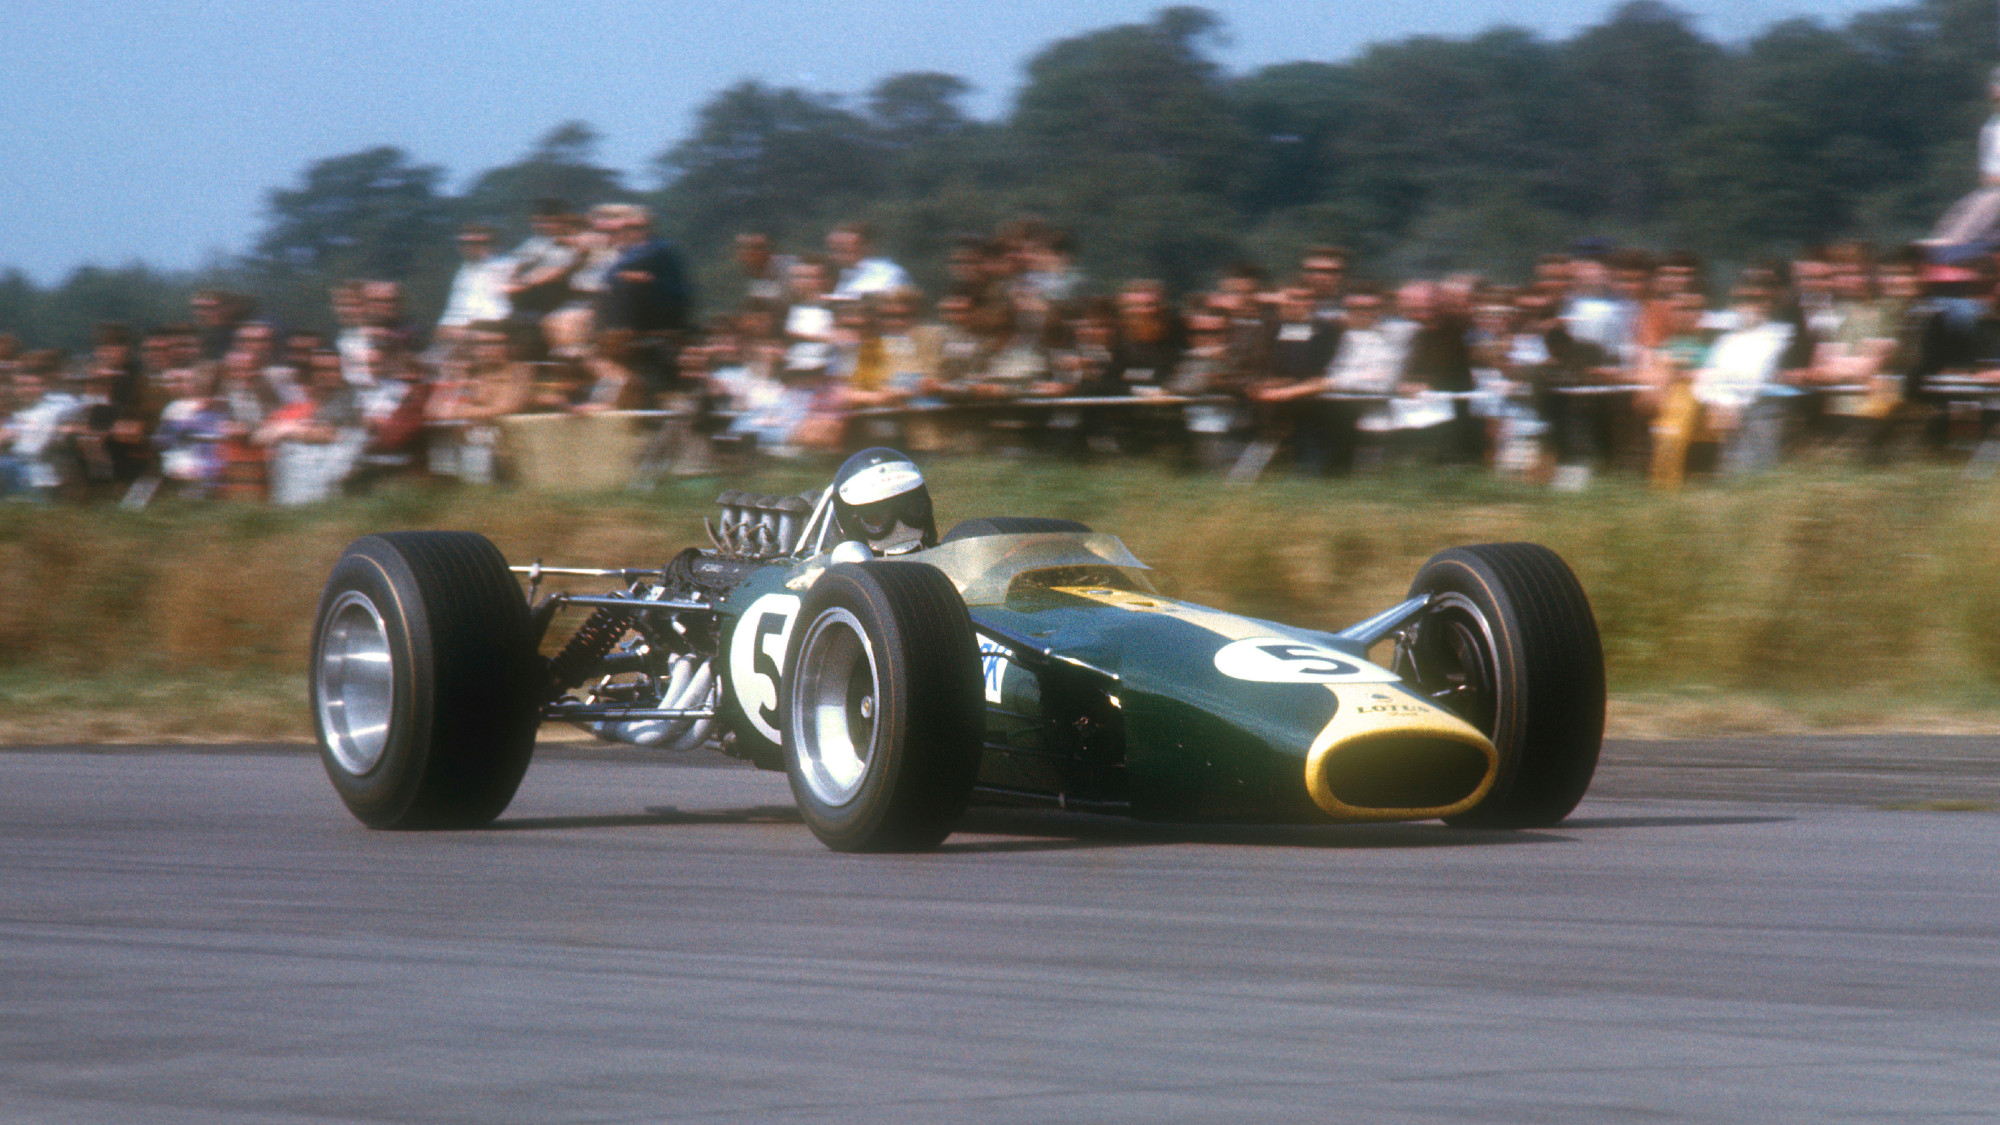 Jim Clar, 1967 British GP